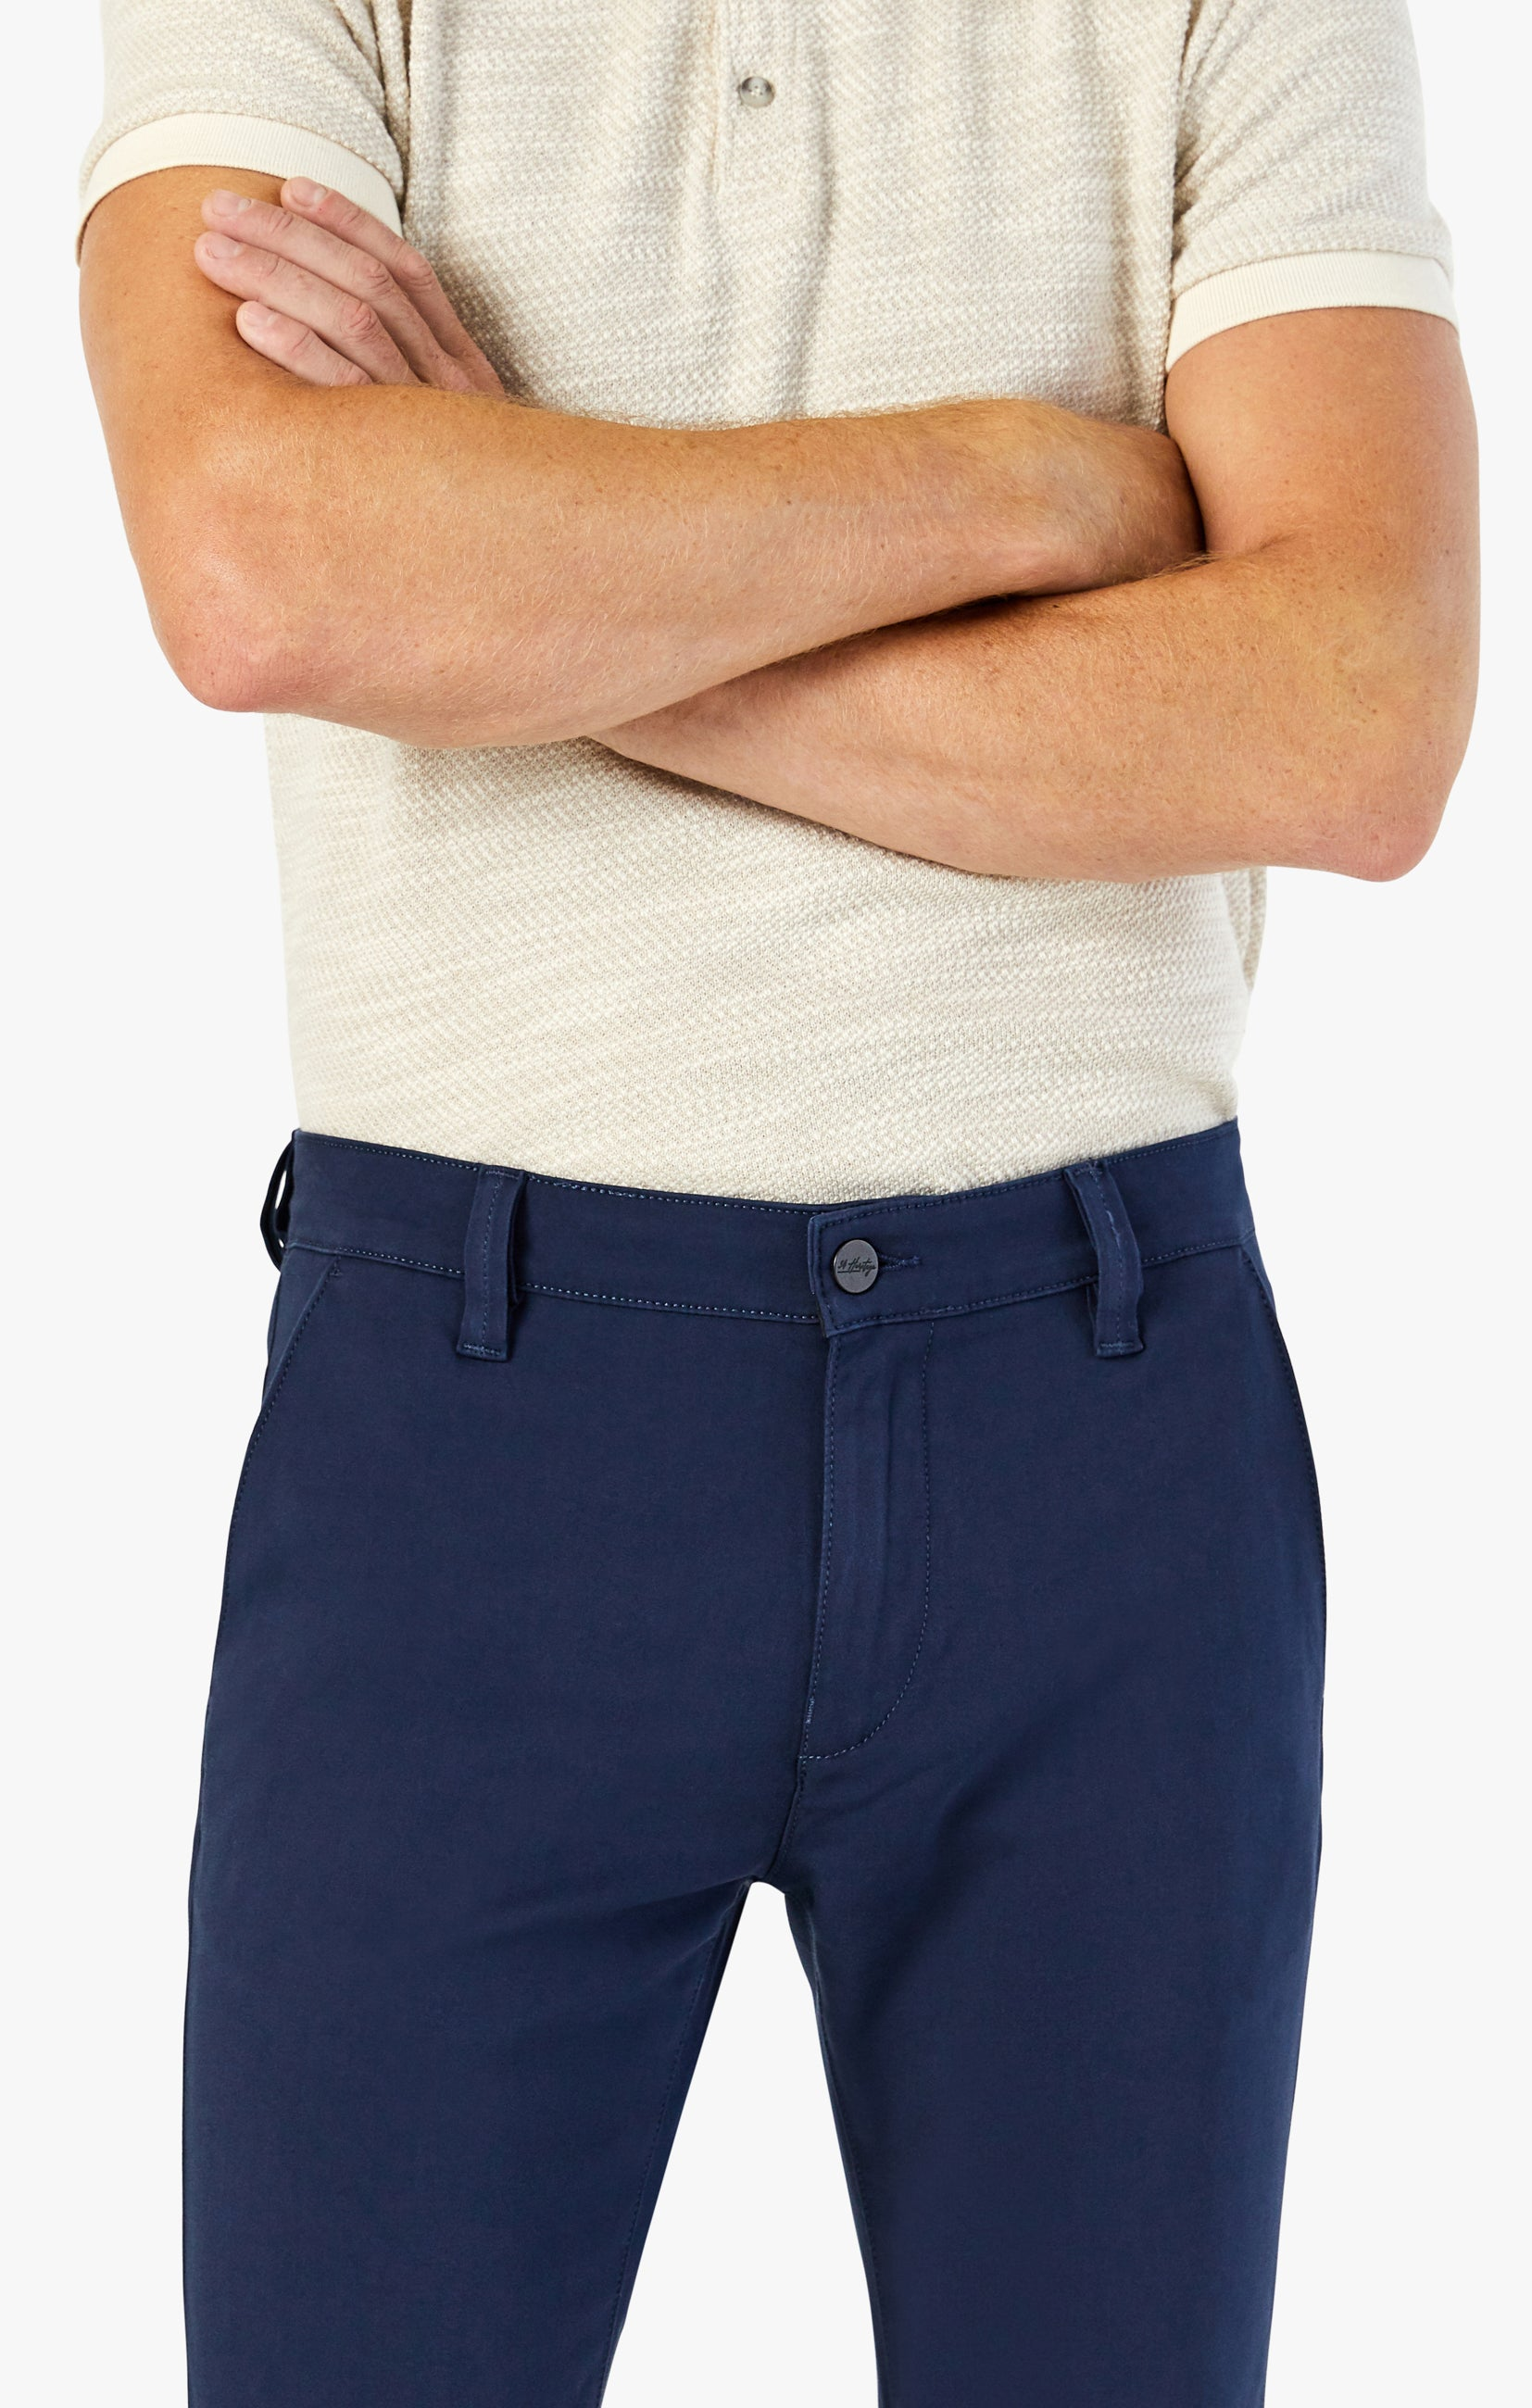 Verona Chino Pants in Navy High Flyer Image 5